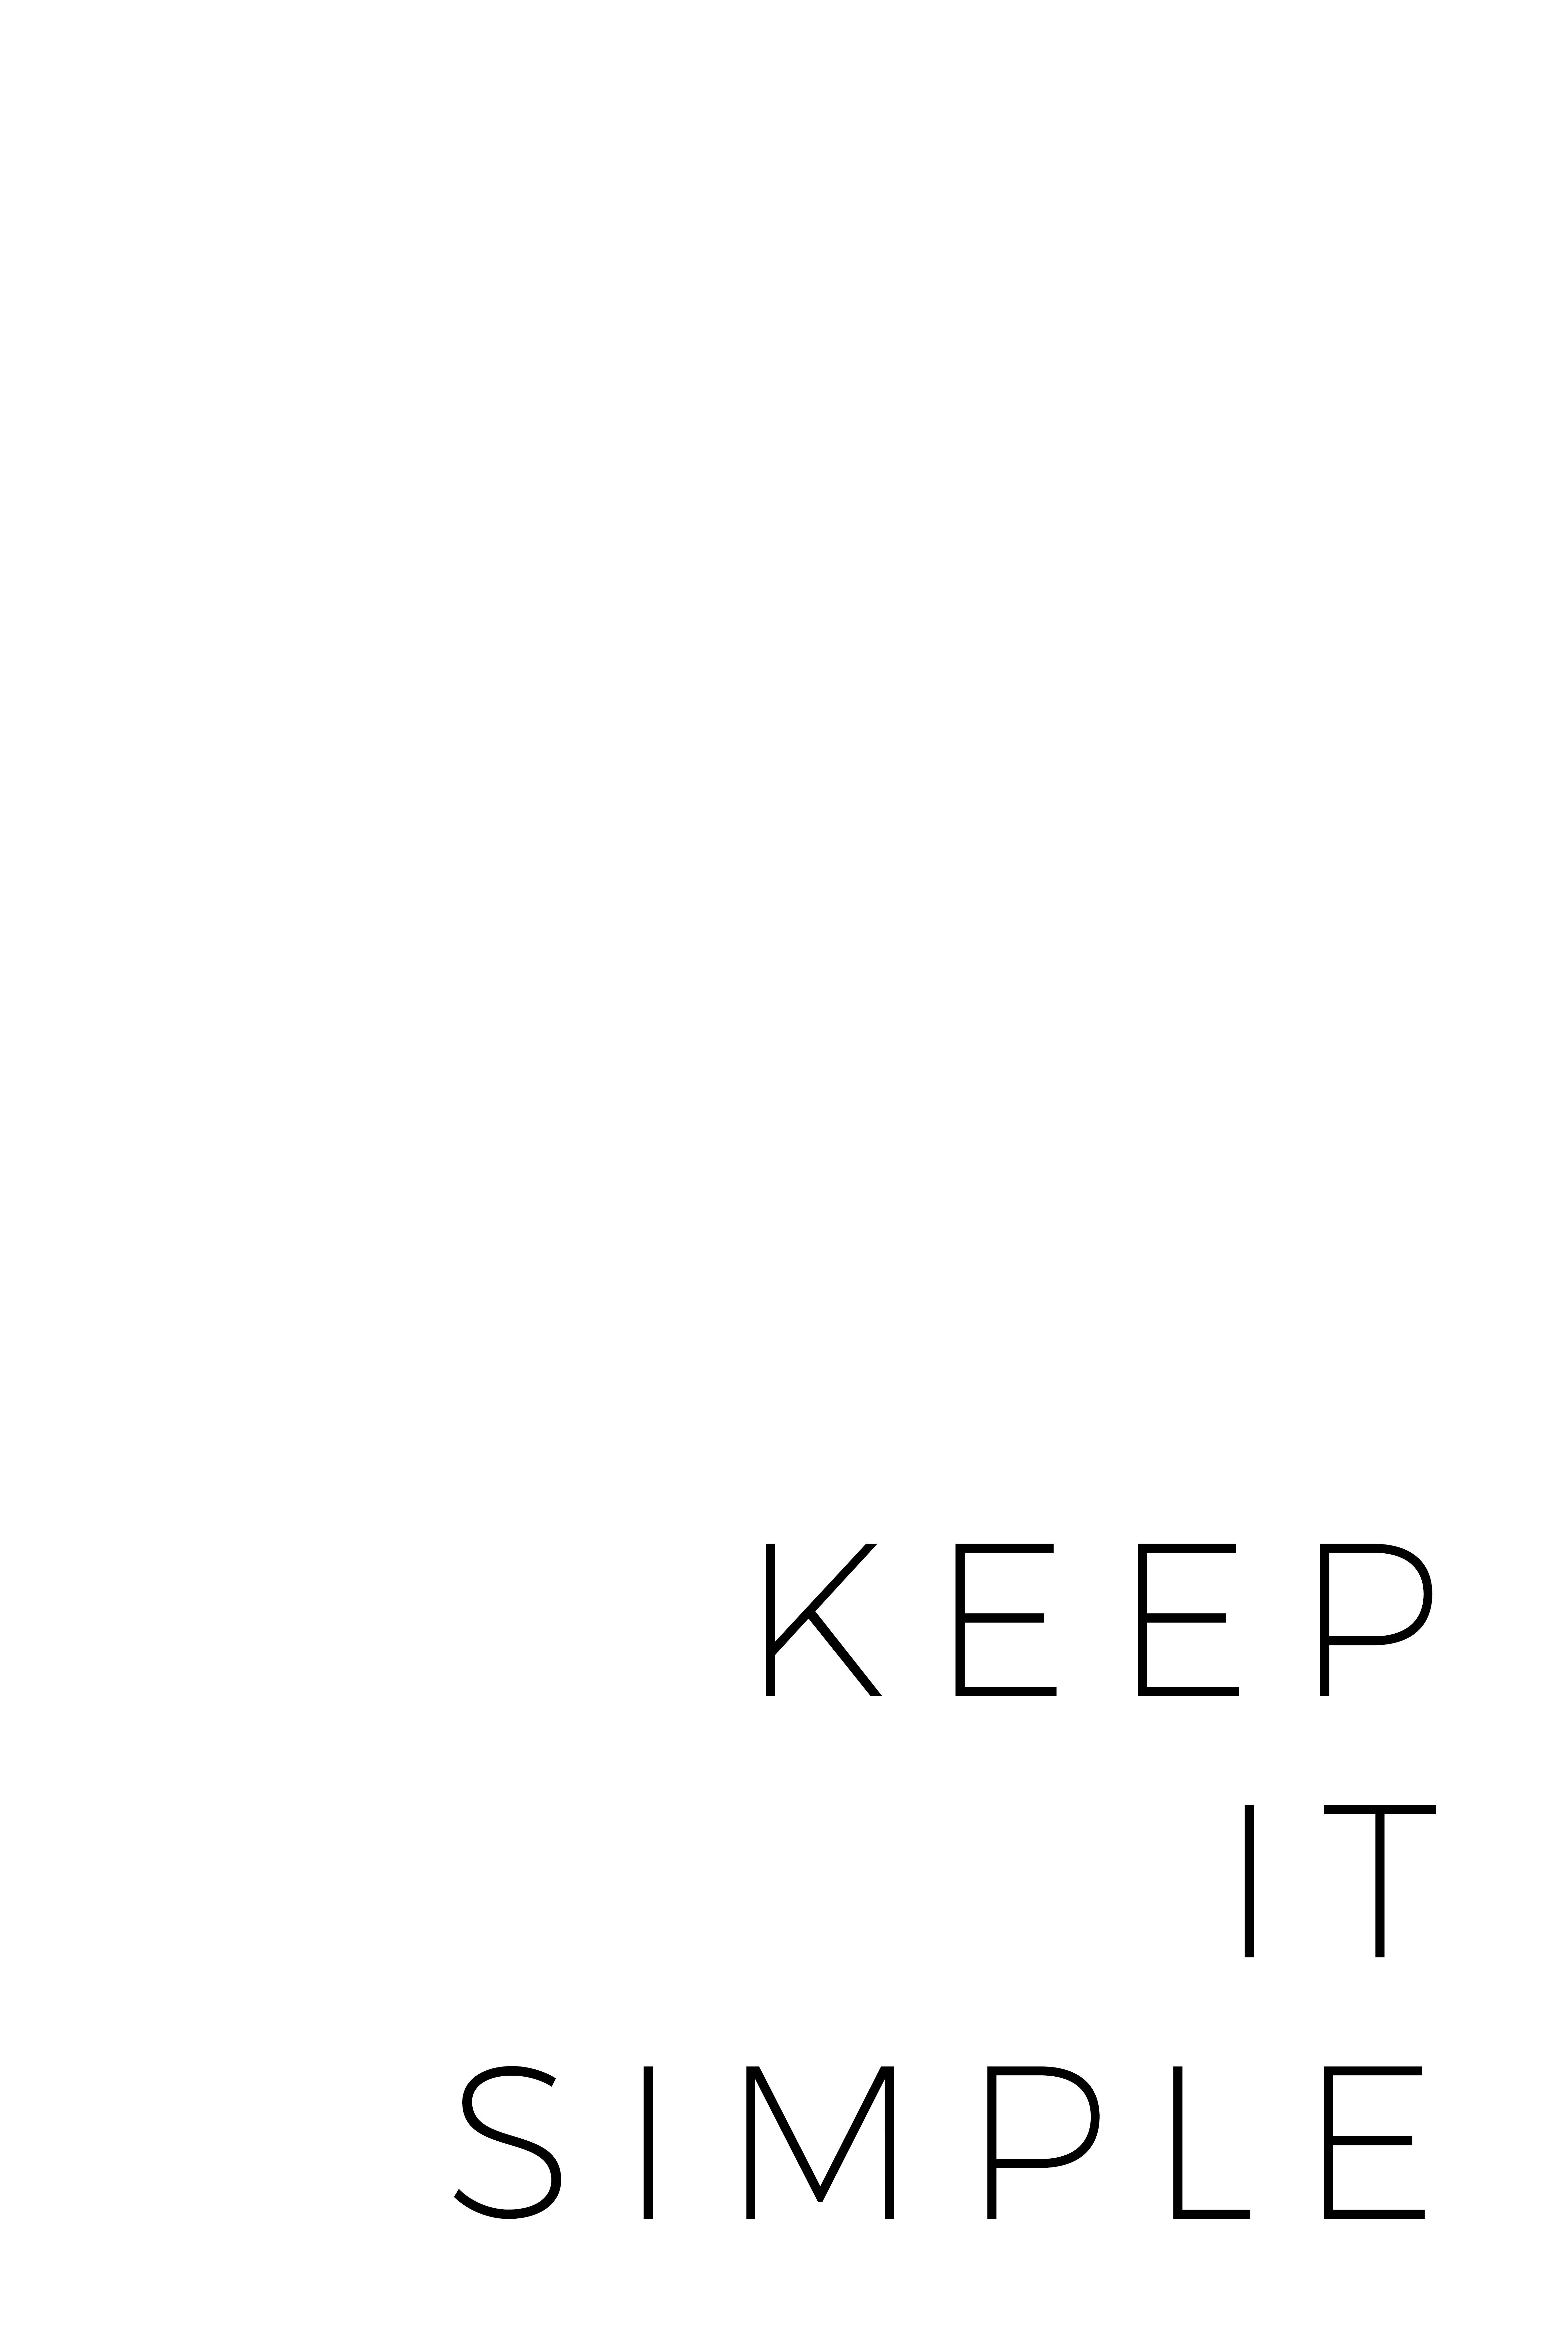 Keep Life Simple Digital Handwriting Poster Simple Life Simplicity Poster Typo Simplicity Printable W Quote Posters Typography Poster Quotes Simple Life Quotes